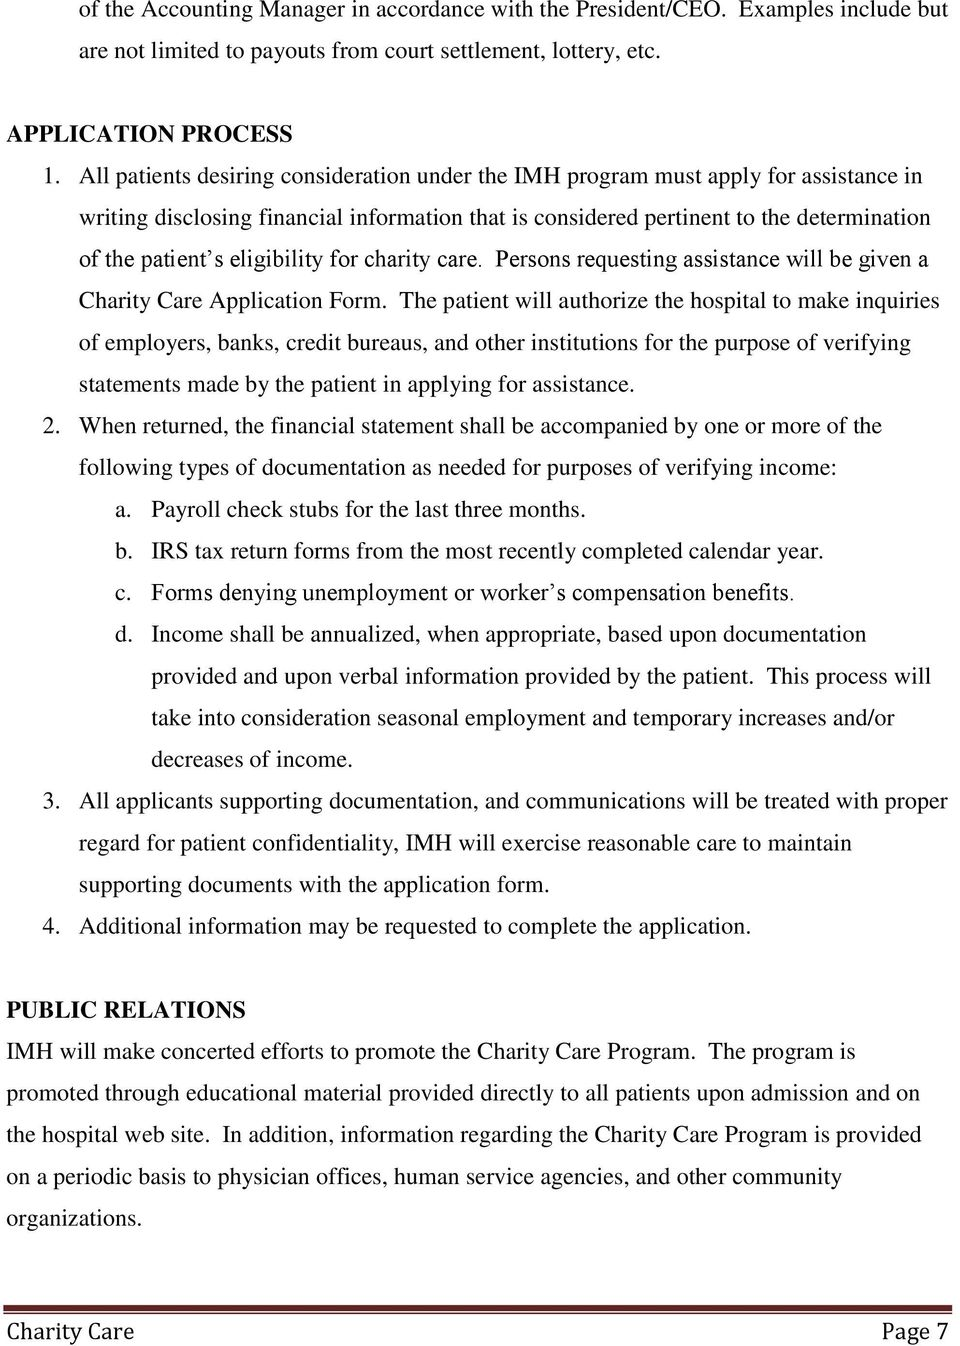 eligibility for charity care. Persons requesting assistance will be given a Charity Care Application Form.